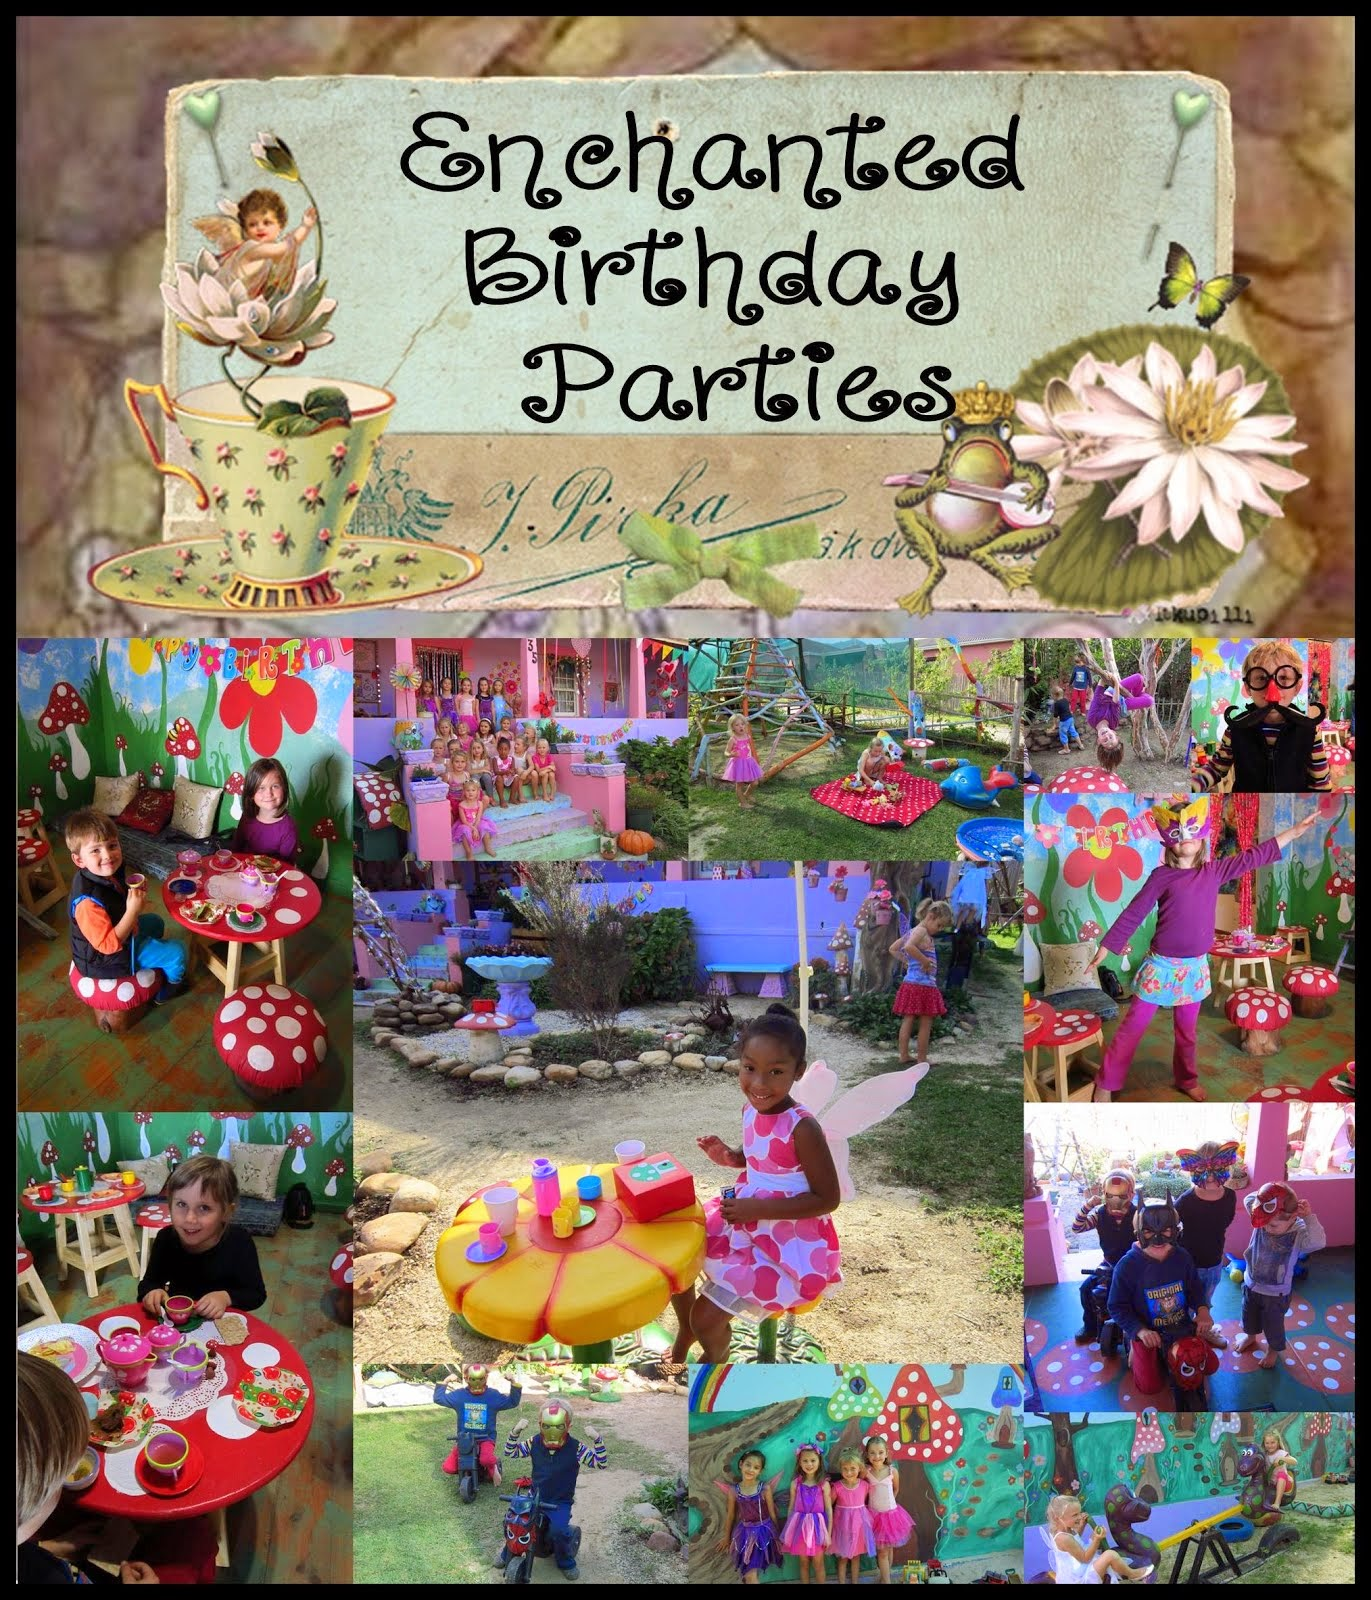 ENCHANTED BIRTHDAY PARTIES